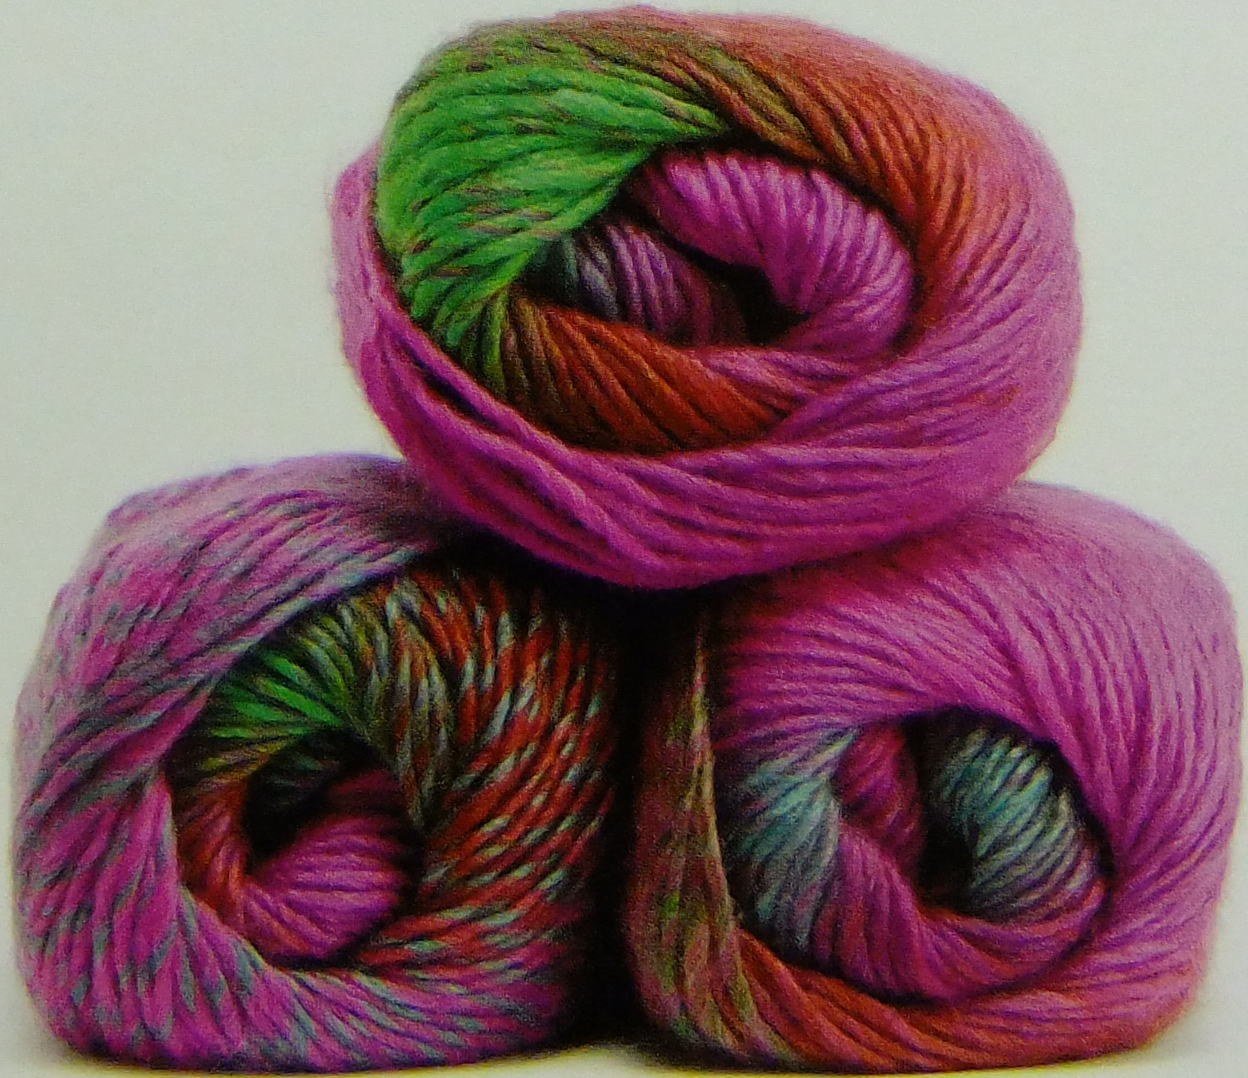 product description this vibrant and bold aran yarn is a